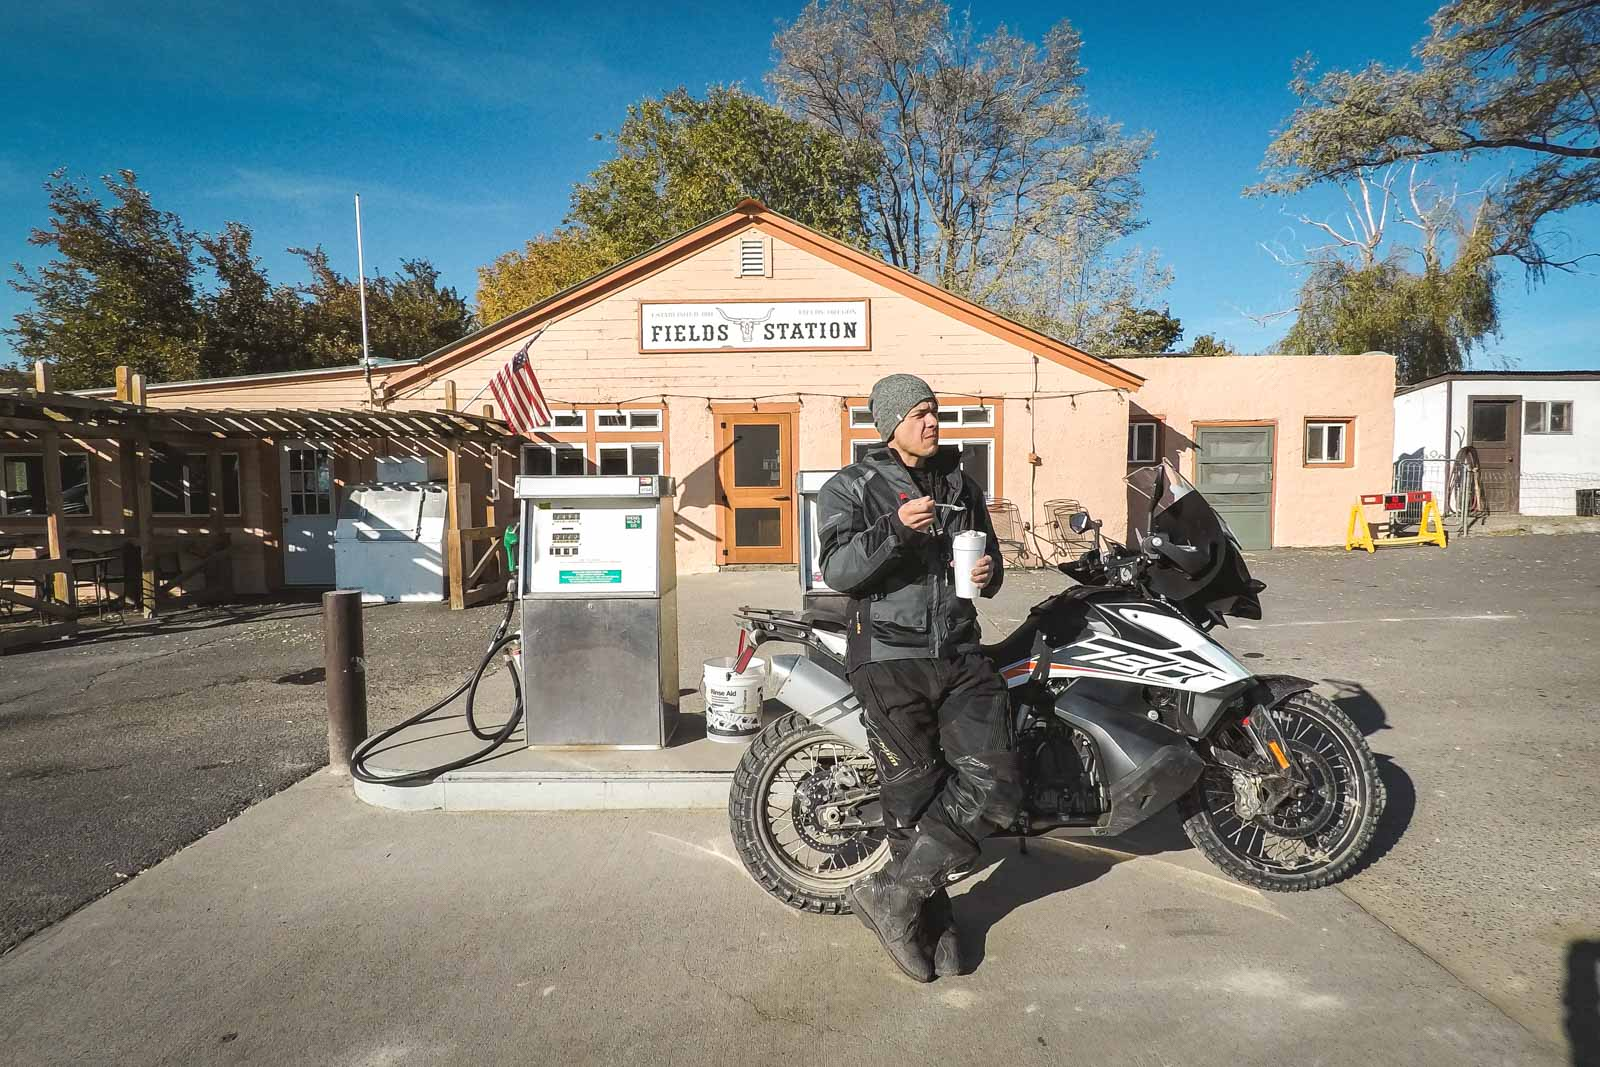 Garrett eating ice cream while leaning on the KTM 790 Adventure in front of fields station gas station